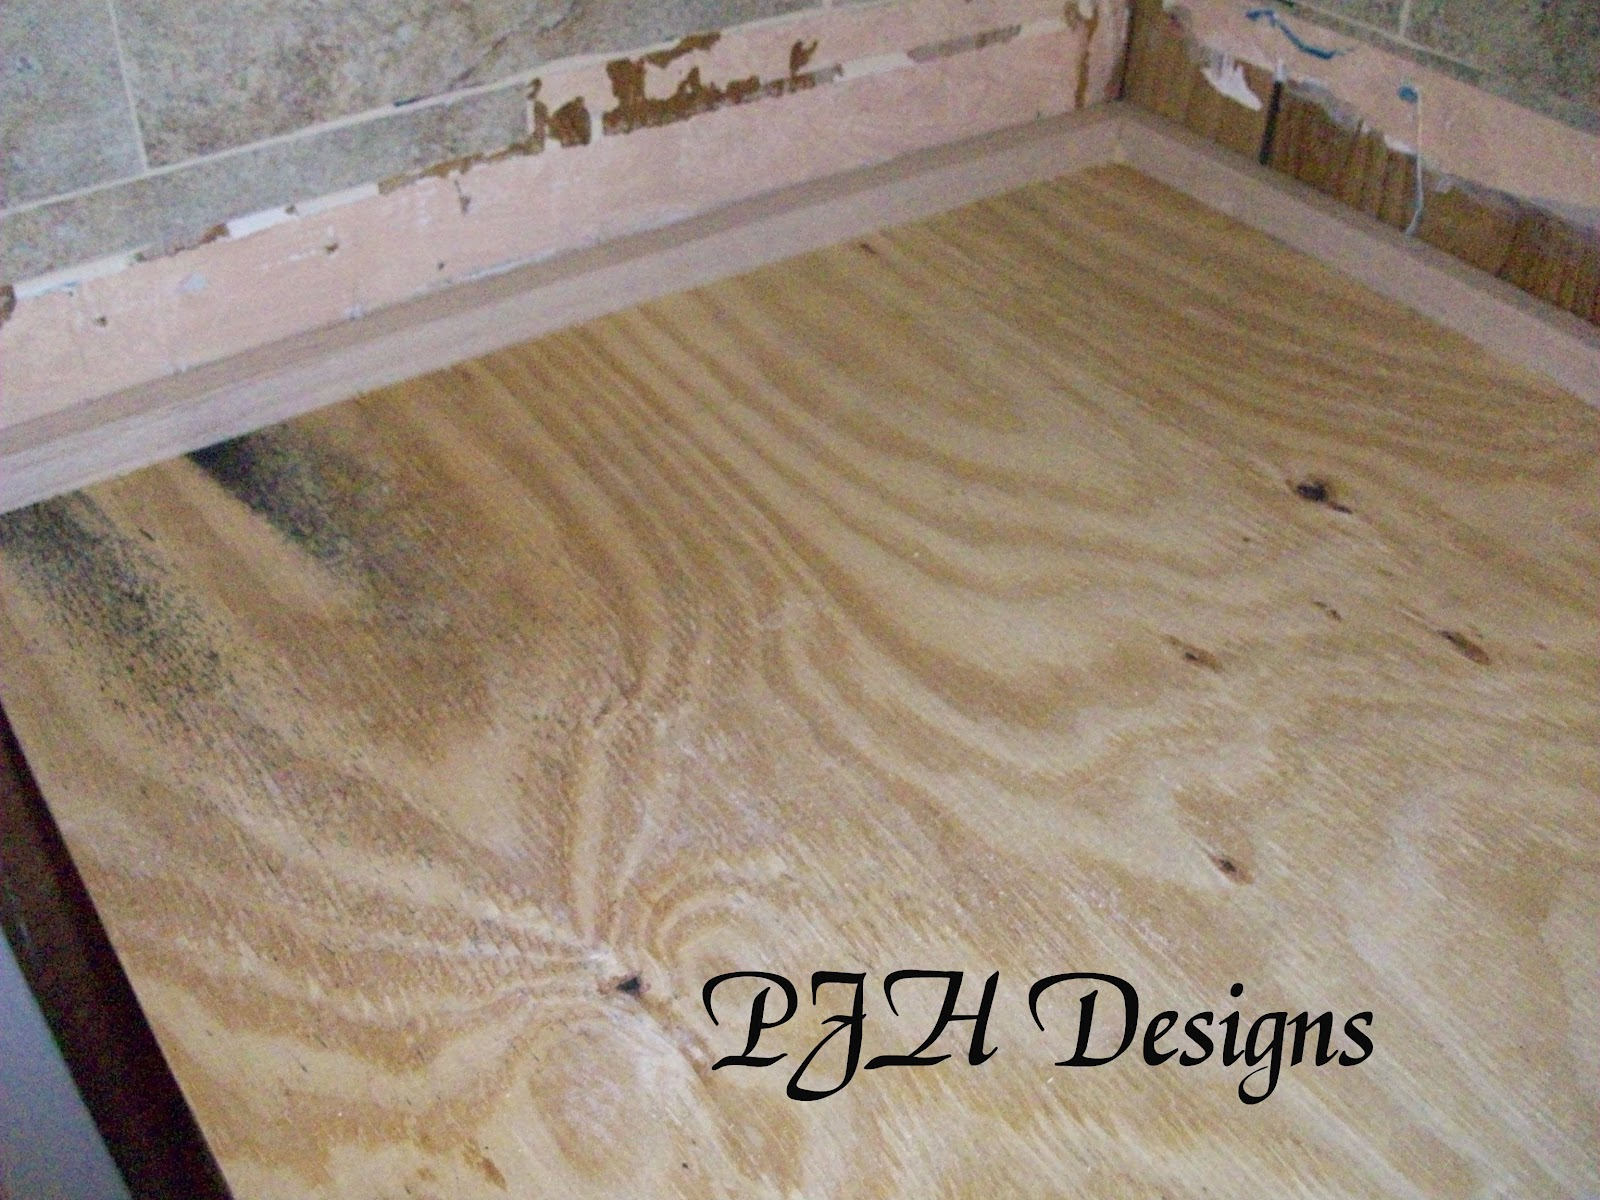 Plywood Countertop Finish Remodelaholic | Easy Butcher Block Countertop Tutorial